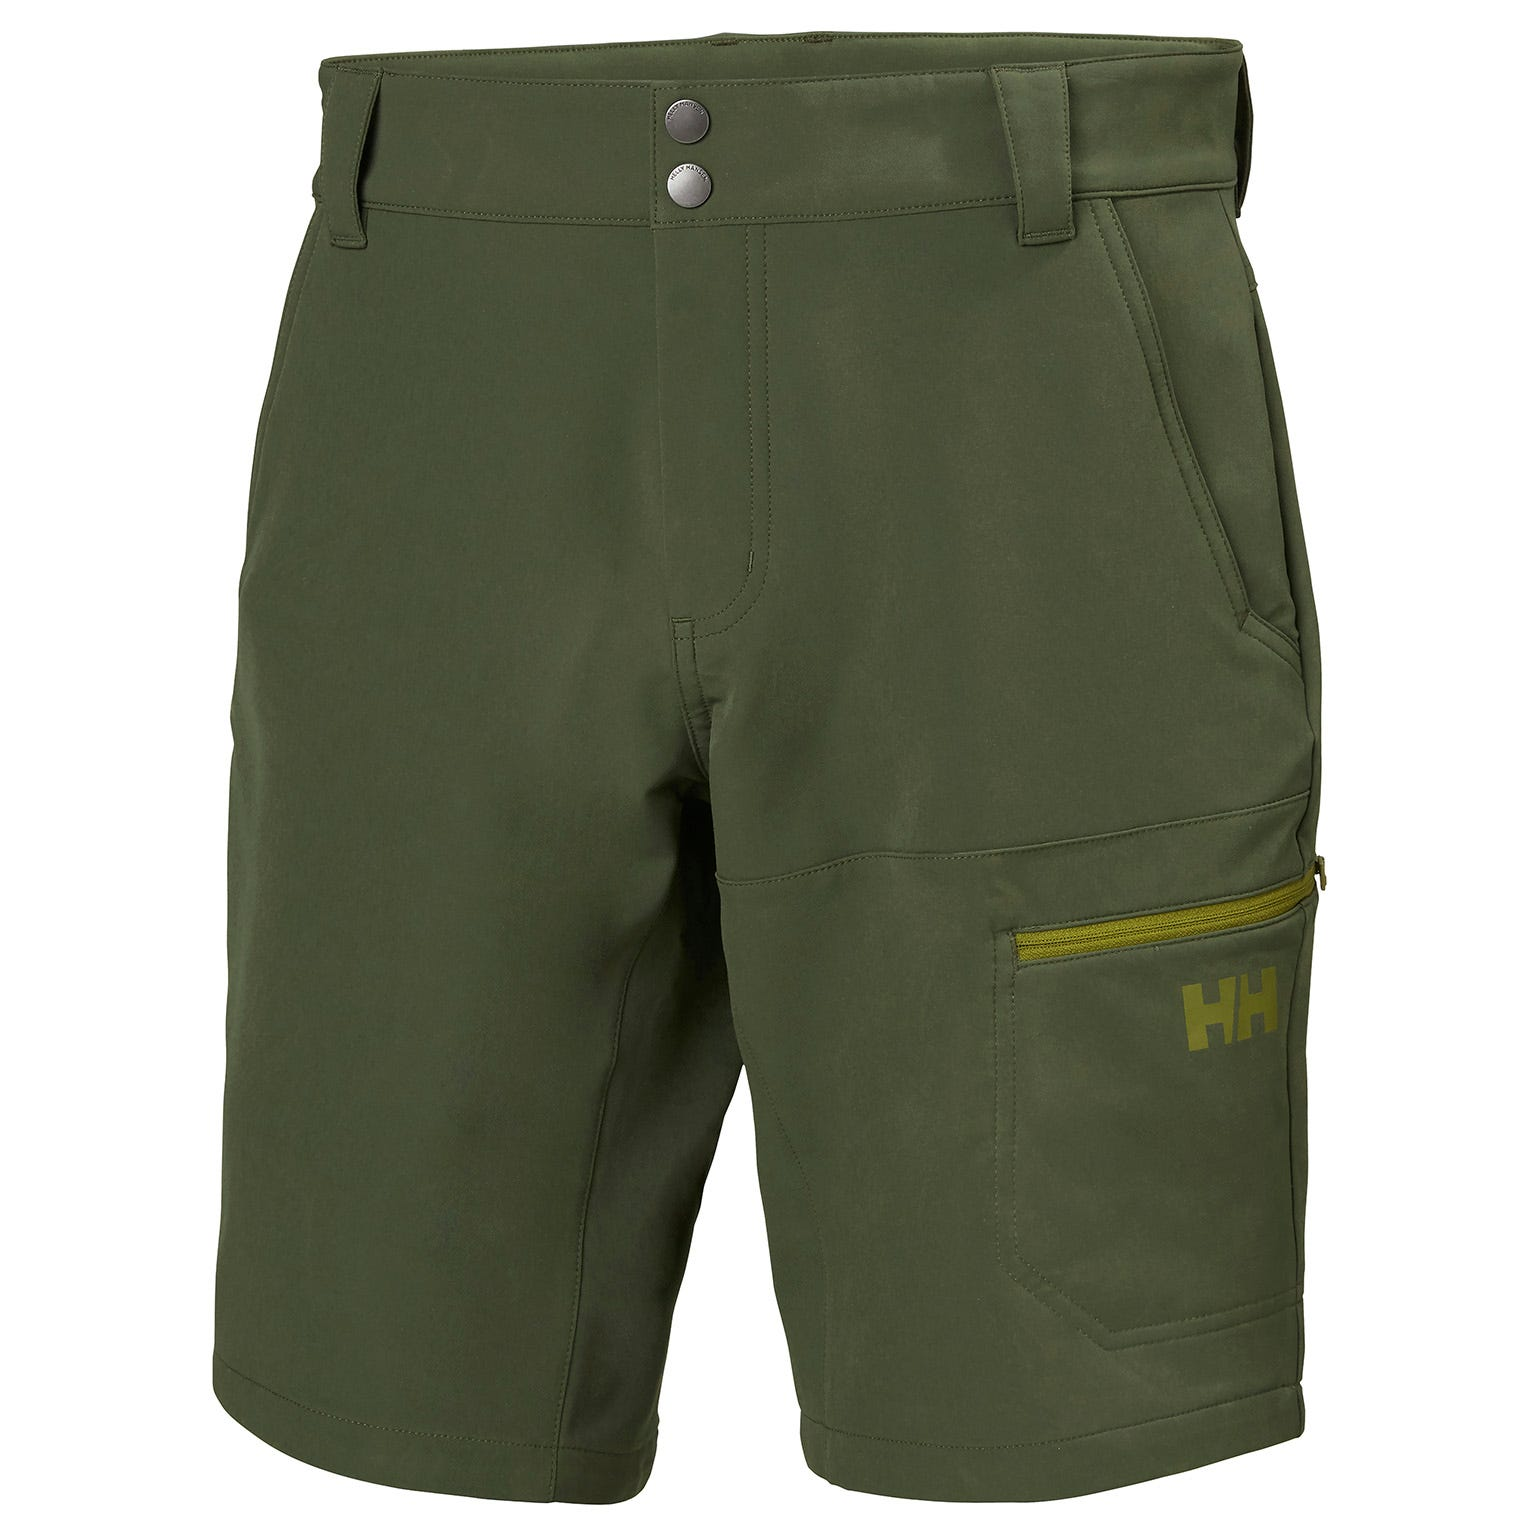 Brono Shorts | Water-repellant Softshell Gb Helly Hansen Mens Hiking Trouser Green XXL